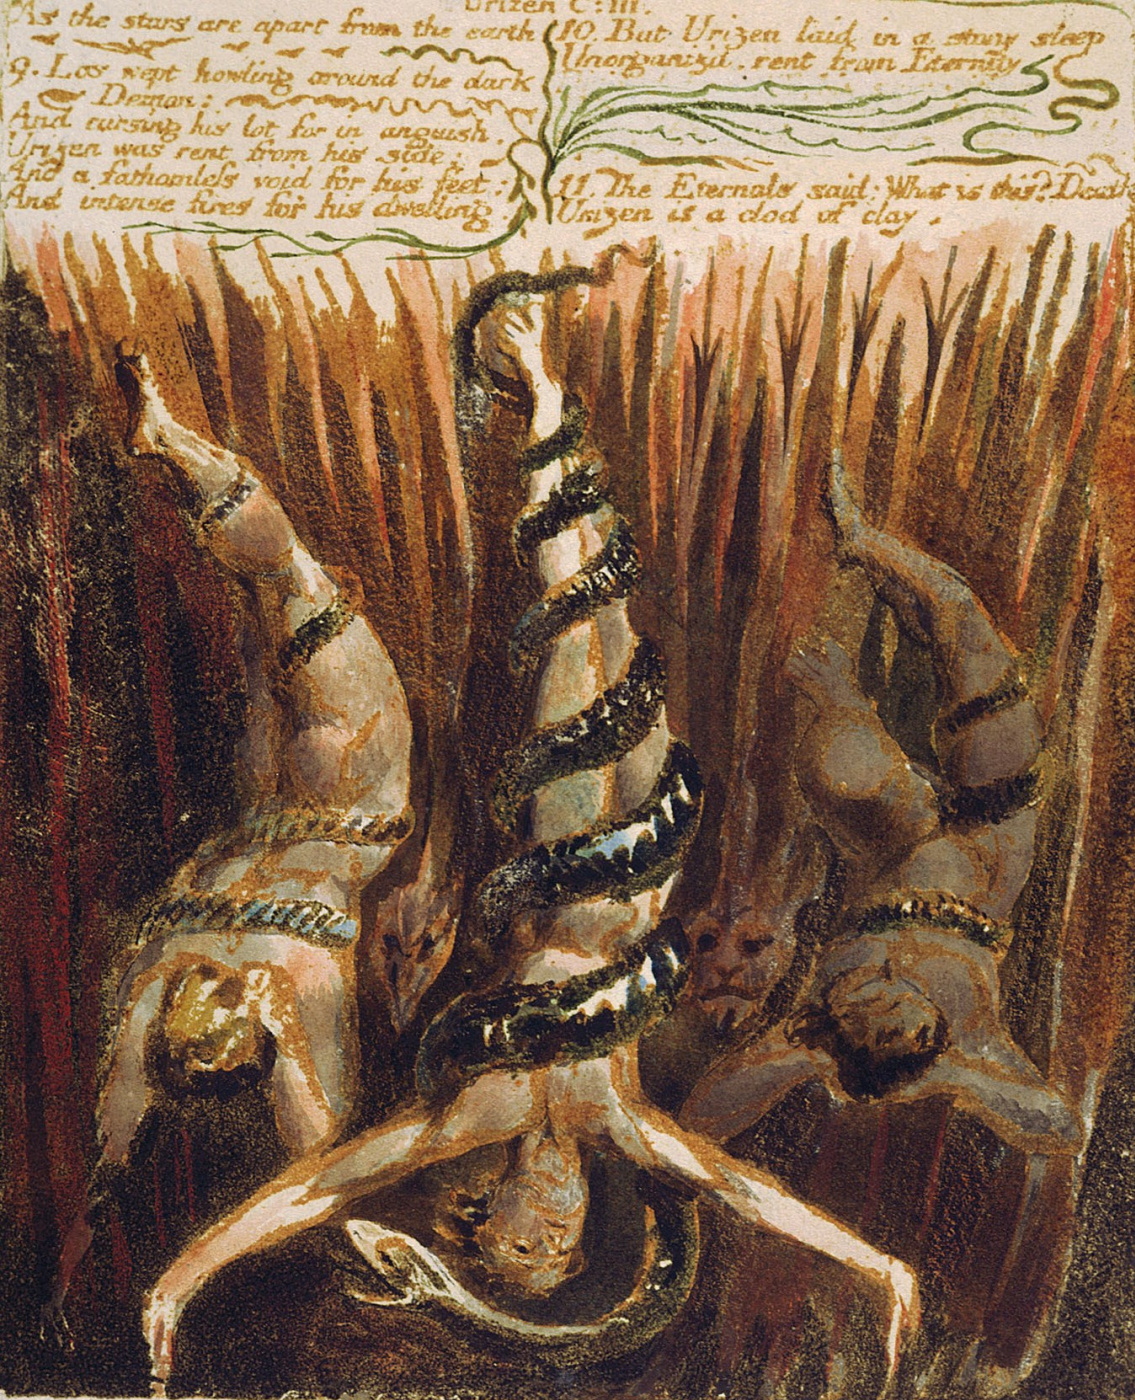 William Blake. The first book Urizen. The figures, wrapped in snakes